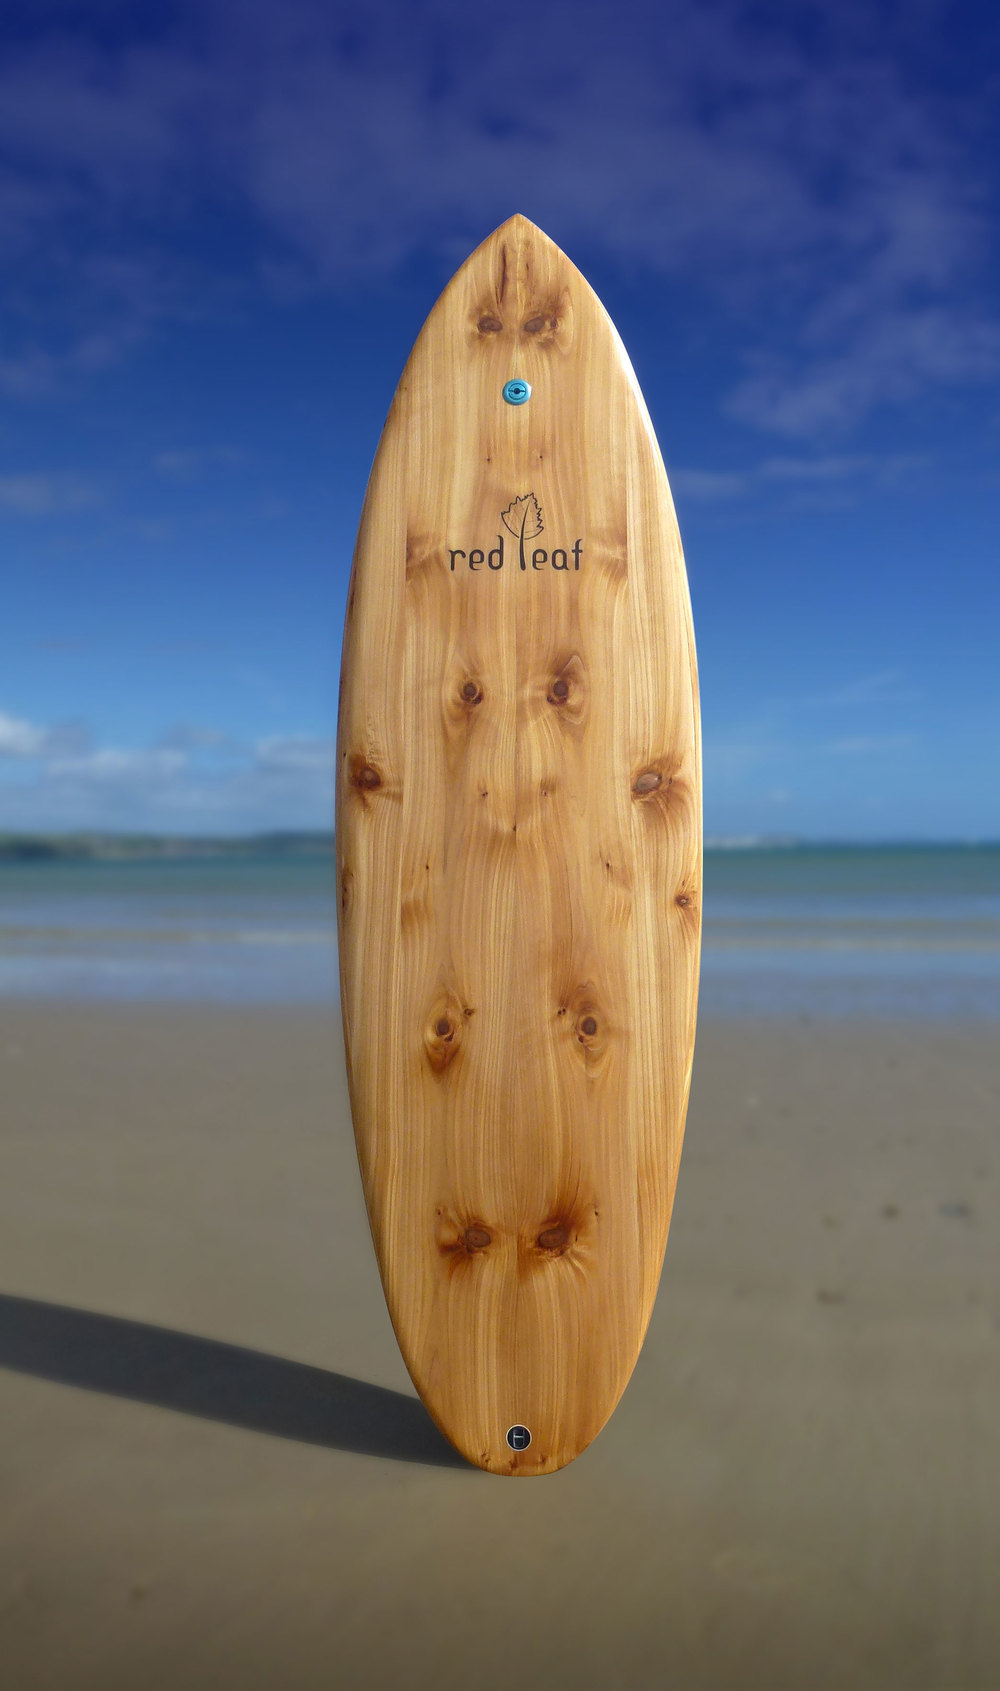 baked bean wooden surfboard